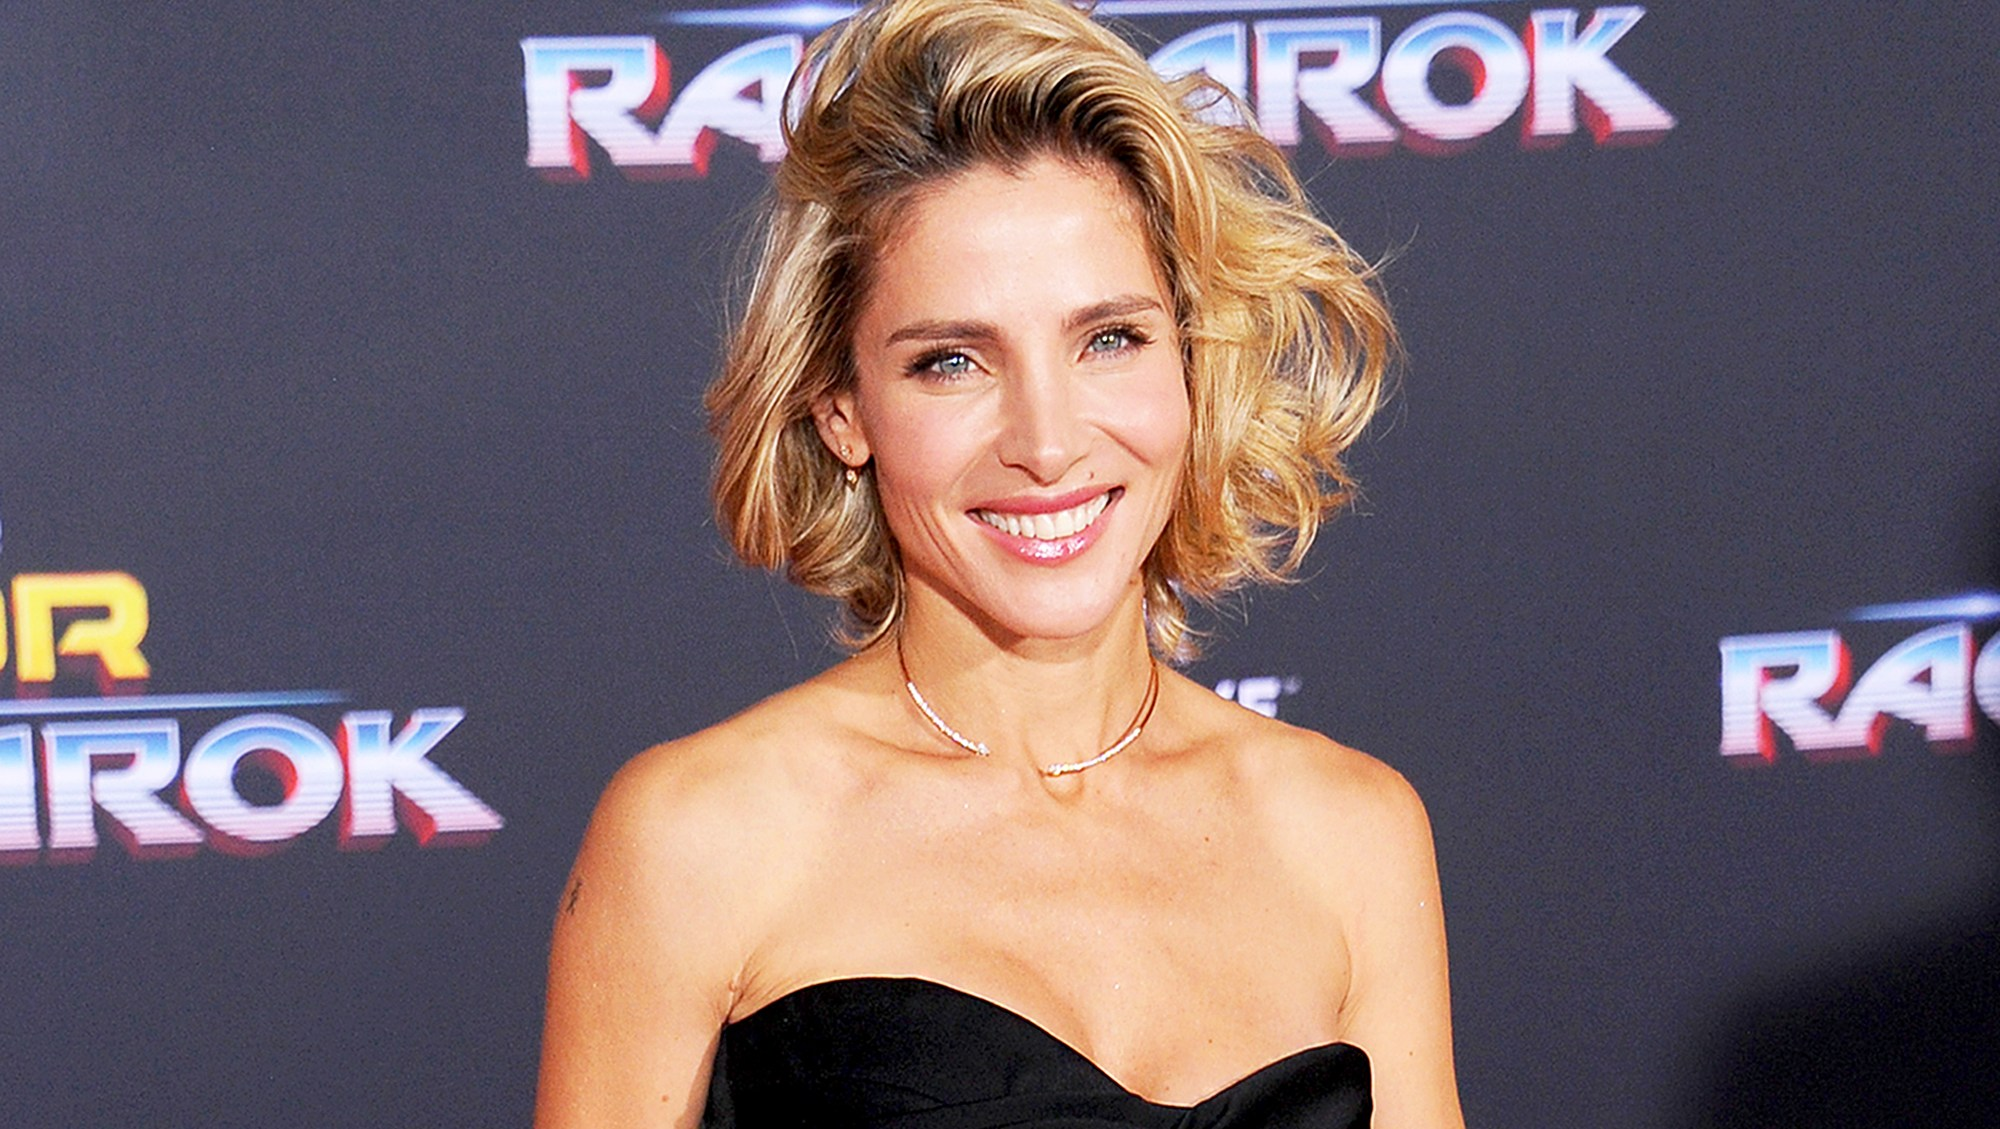 """Elsa Pataky arrives at the 2017 premiere of Disney and Marvel's """"Thor: Ragnarok"""" at the El Capitan Theatre in Los Angeles, California."""